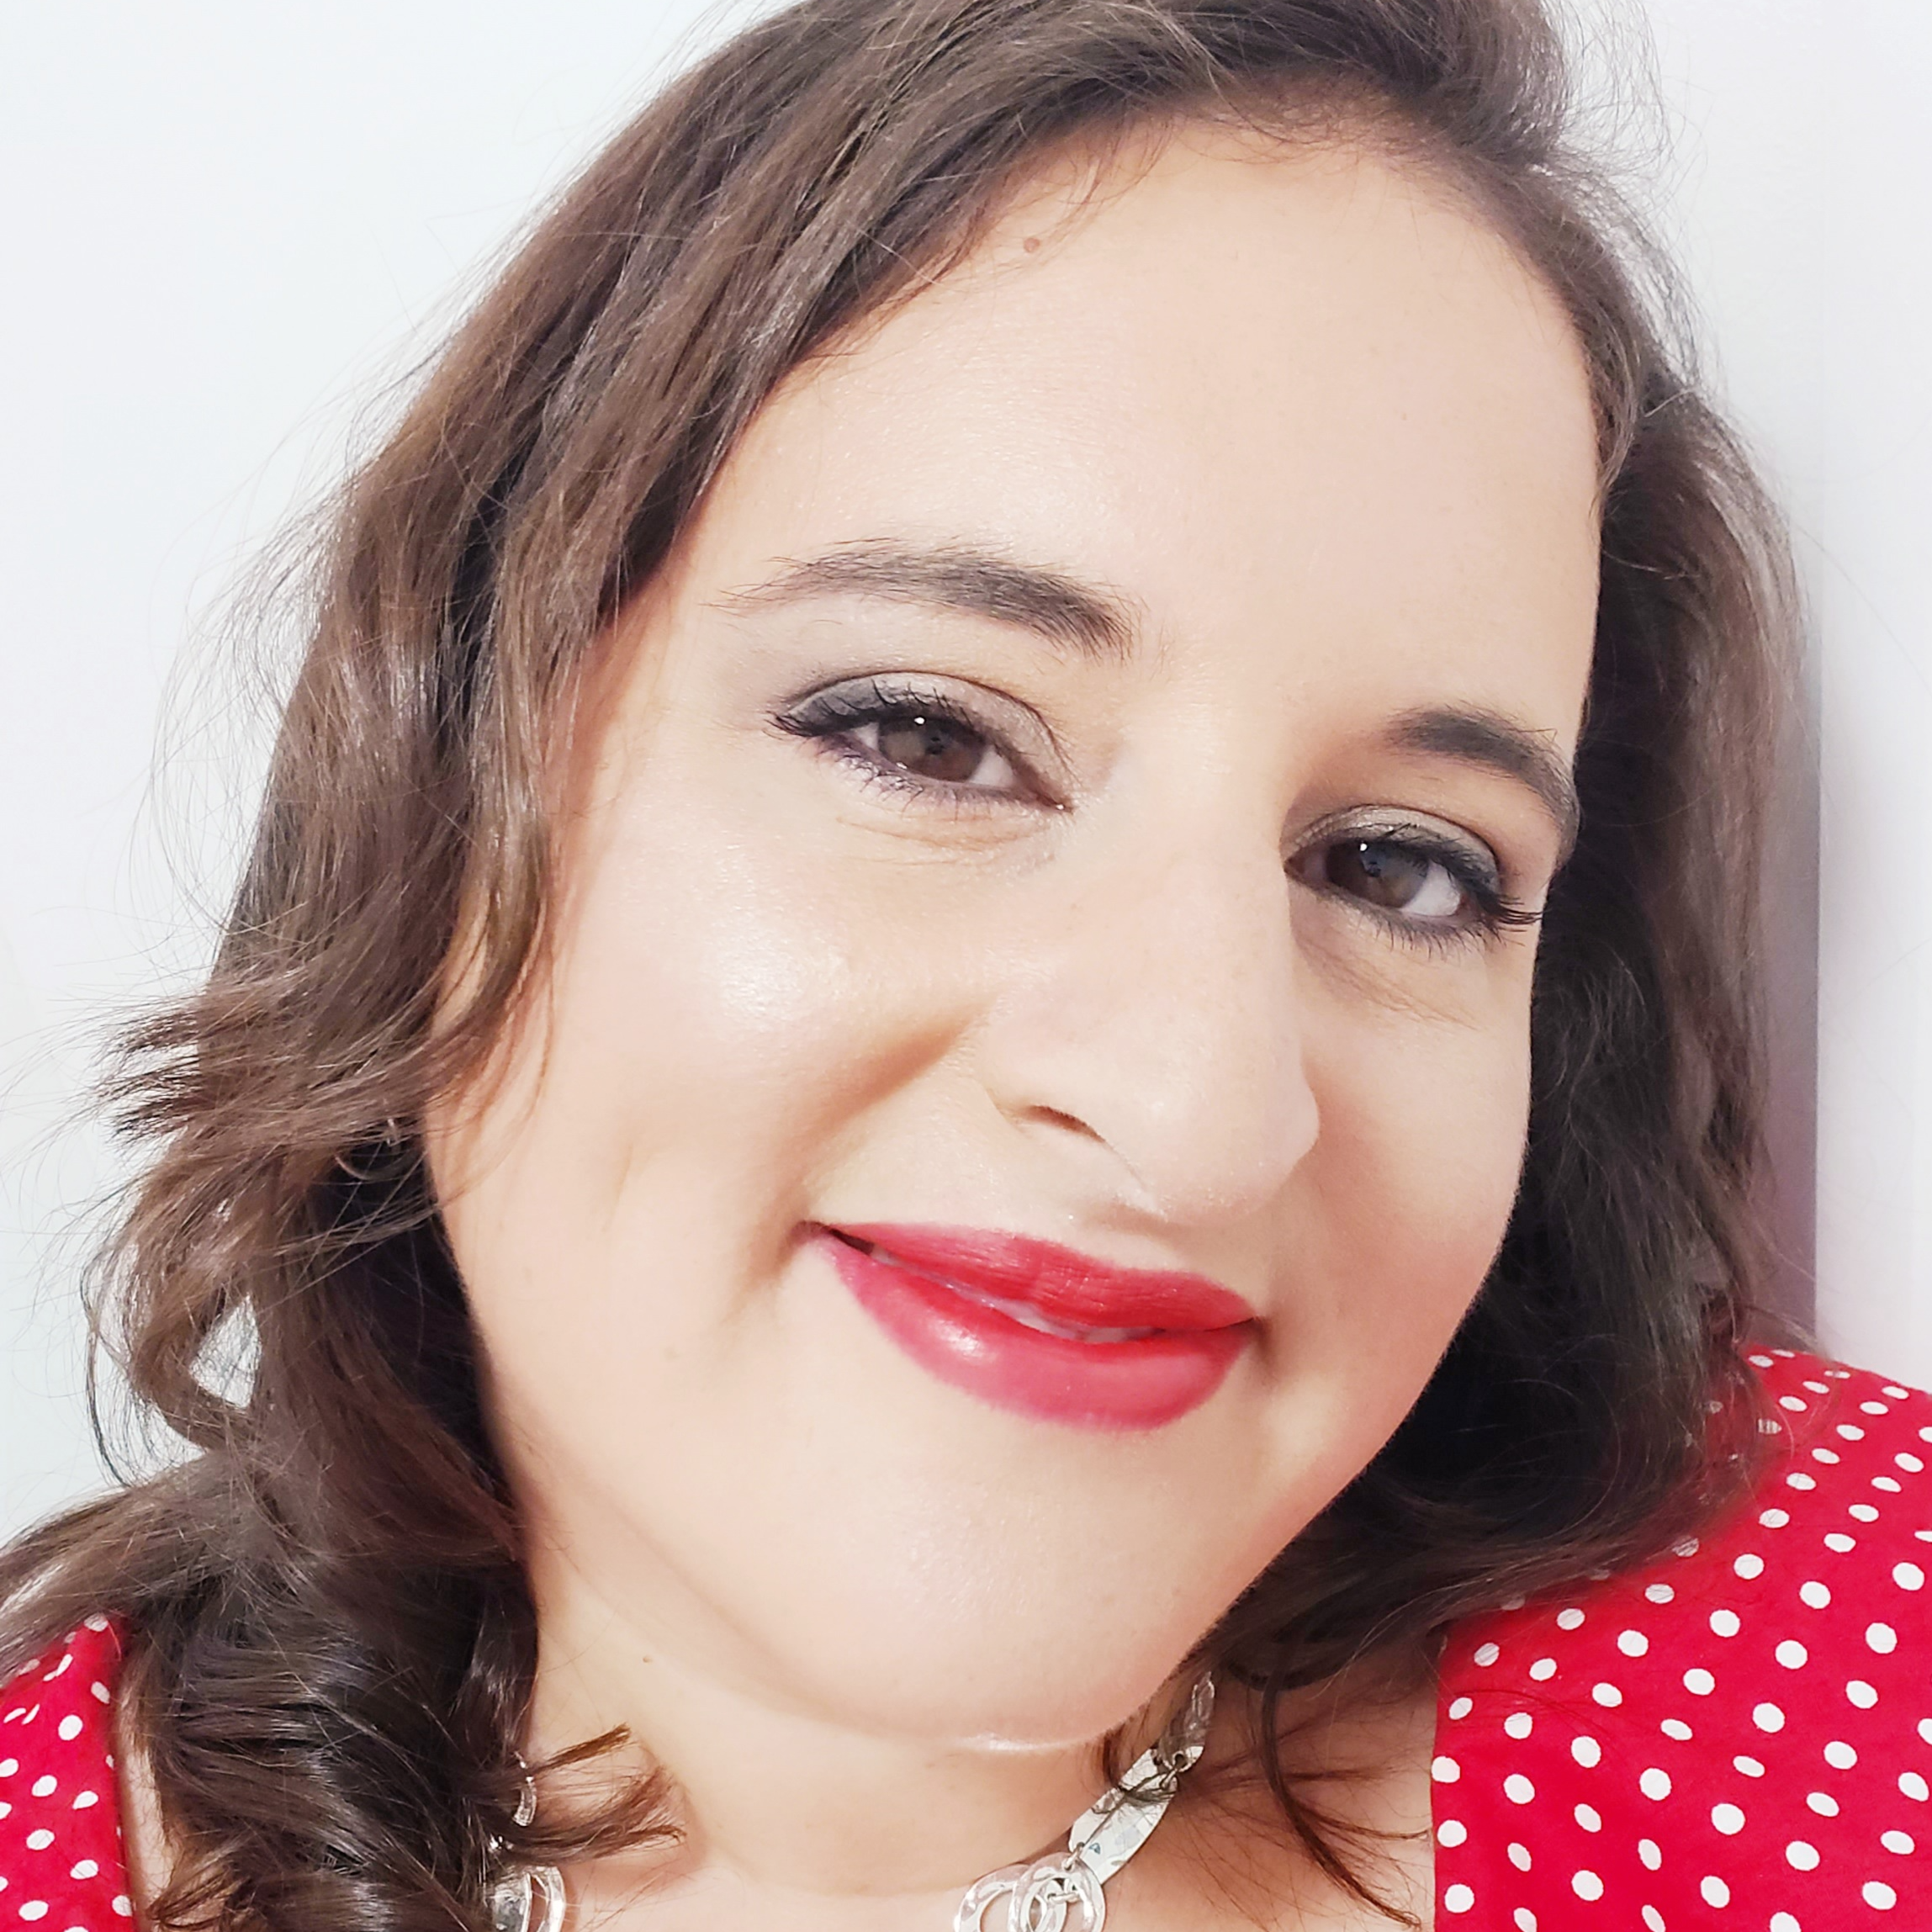 a still photo of Dr Natasha, a woman with brown mid length hair. She is wearing a red spotty top and a luscious red lipstick to match. Natasha is smiling with her head tilted to the side in front of a white background